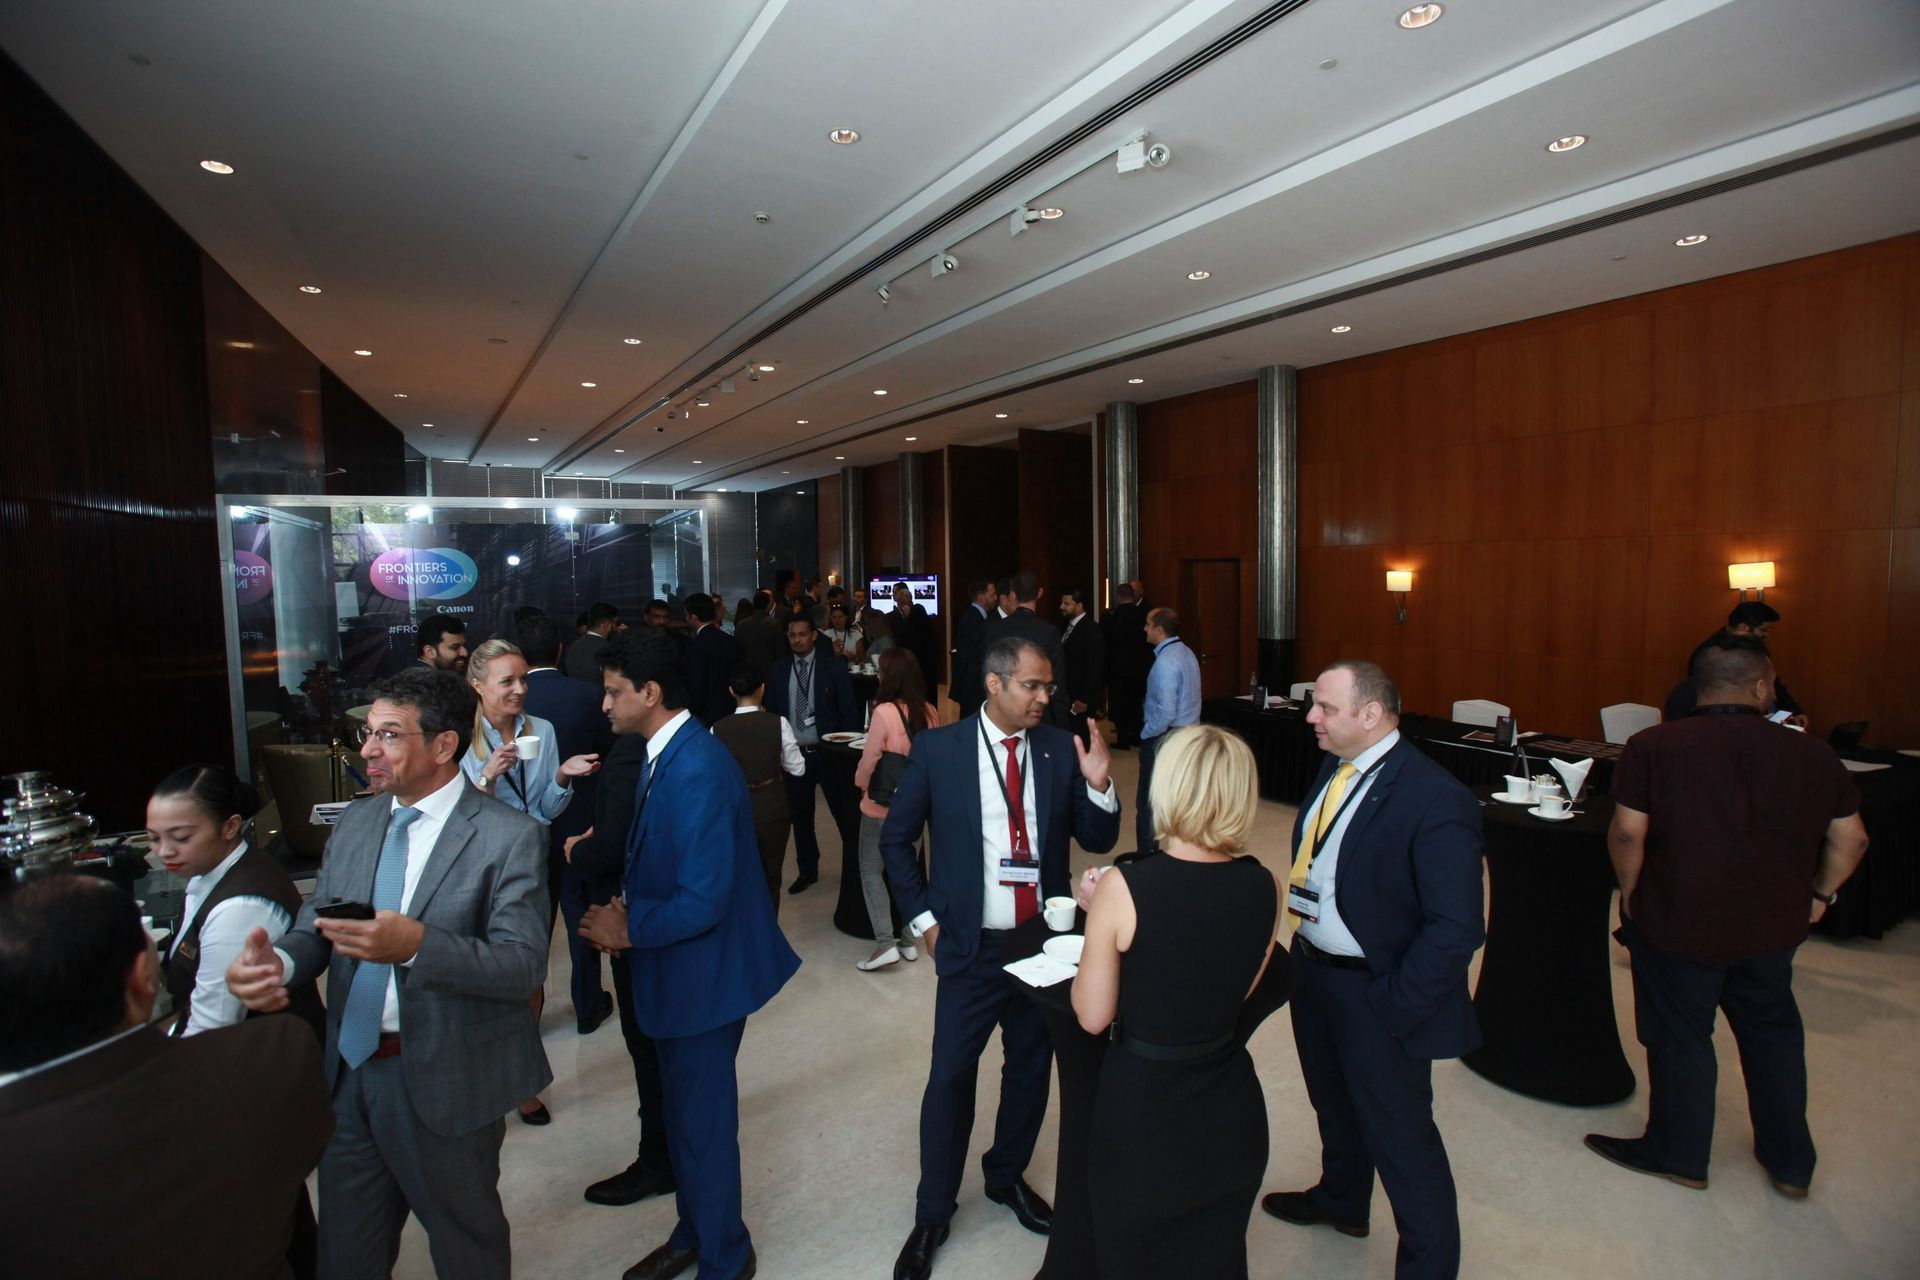 frontiers-of-innovation-2017-dubai-Gallery-Image-8